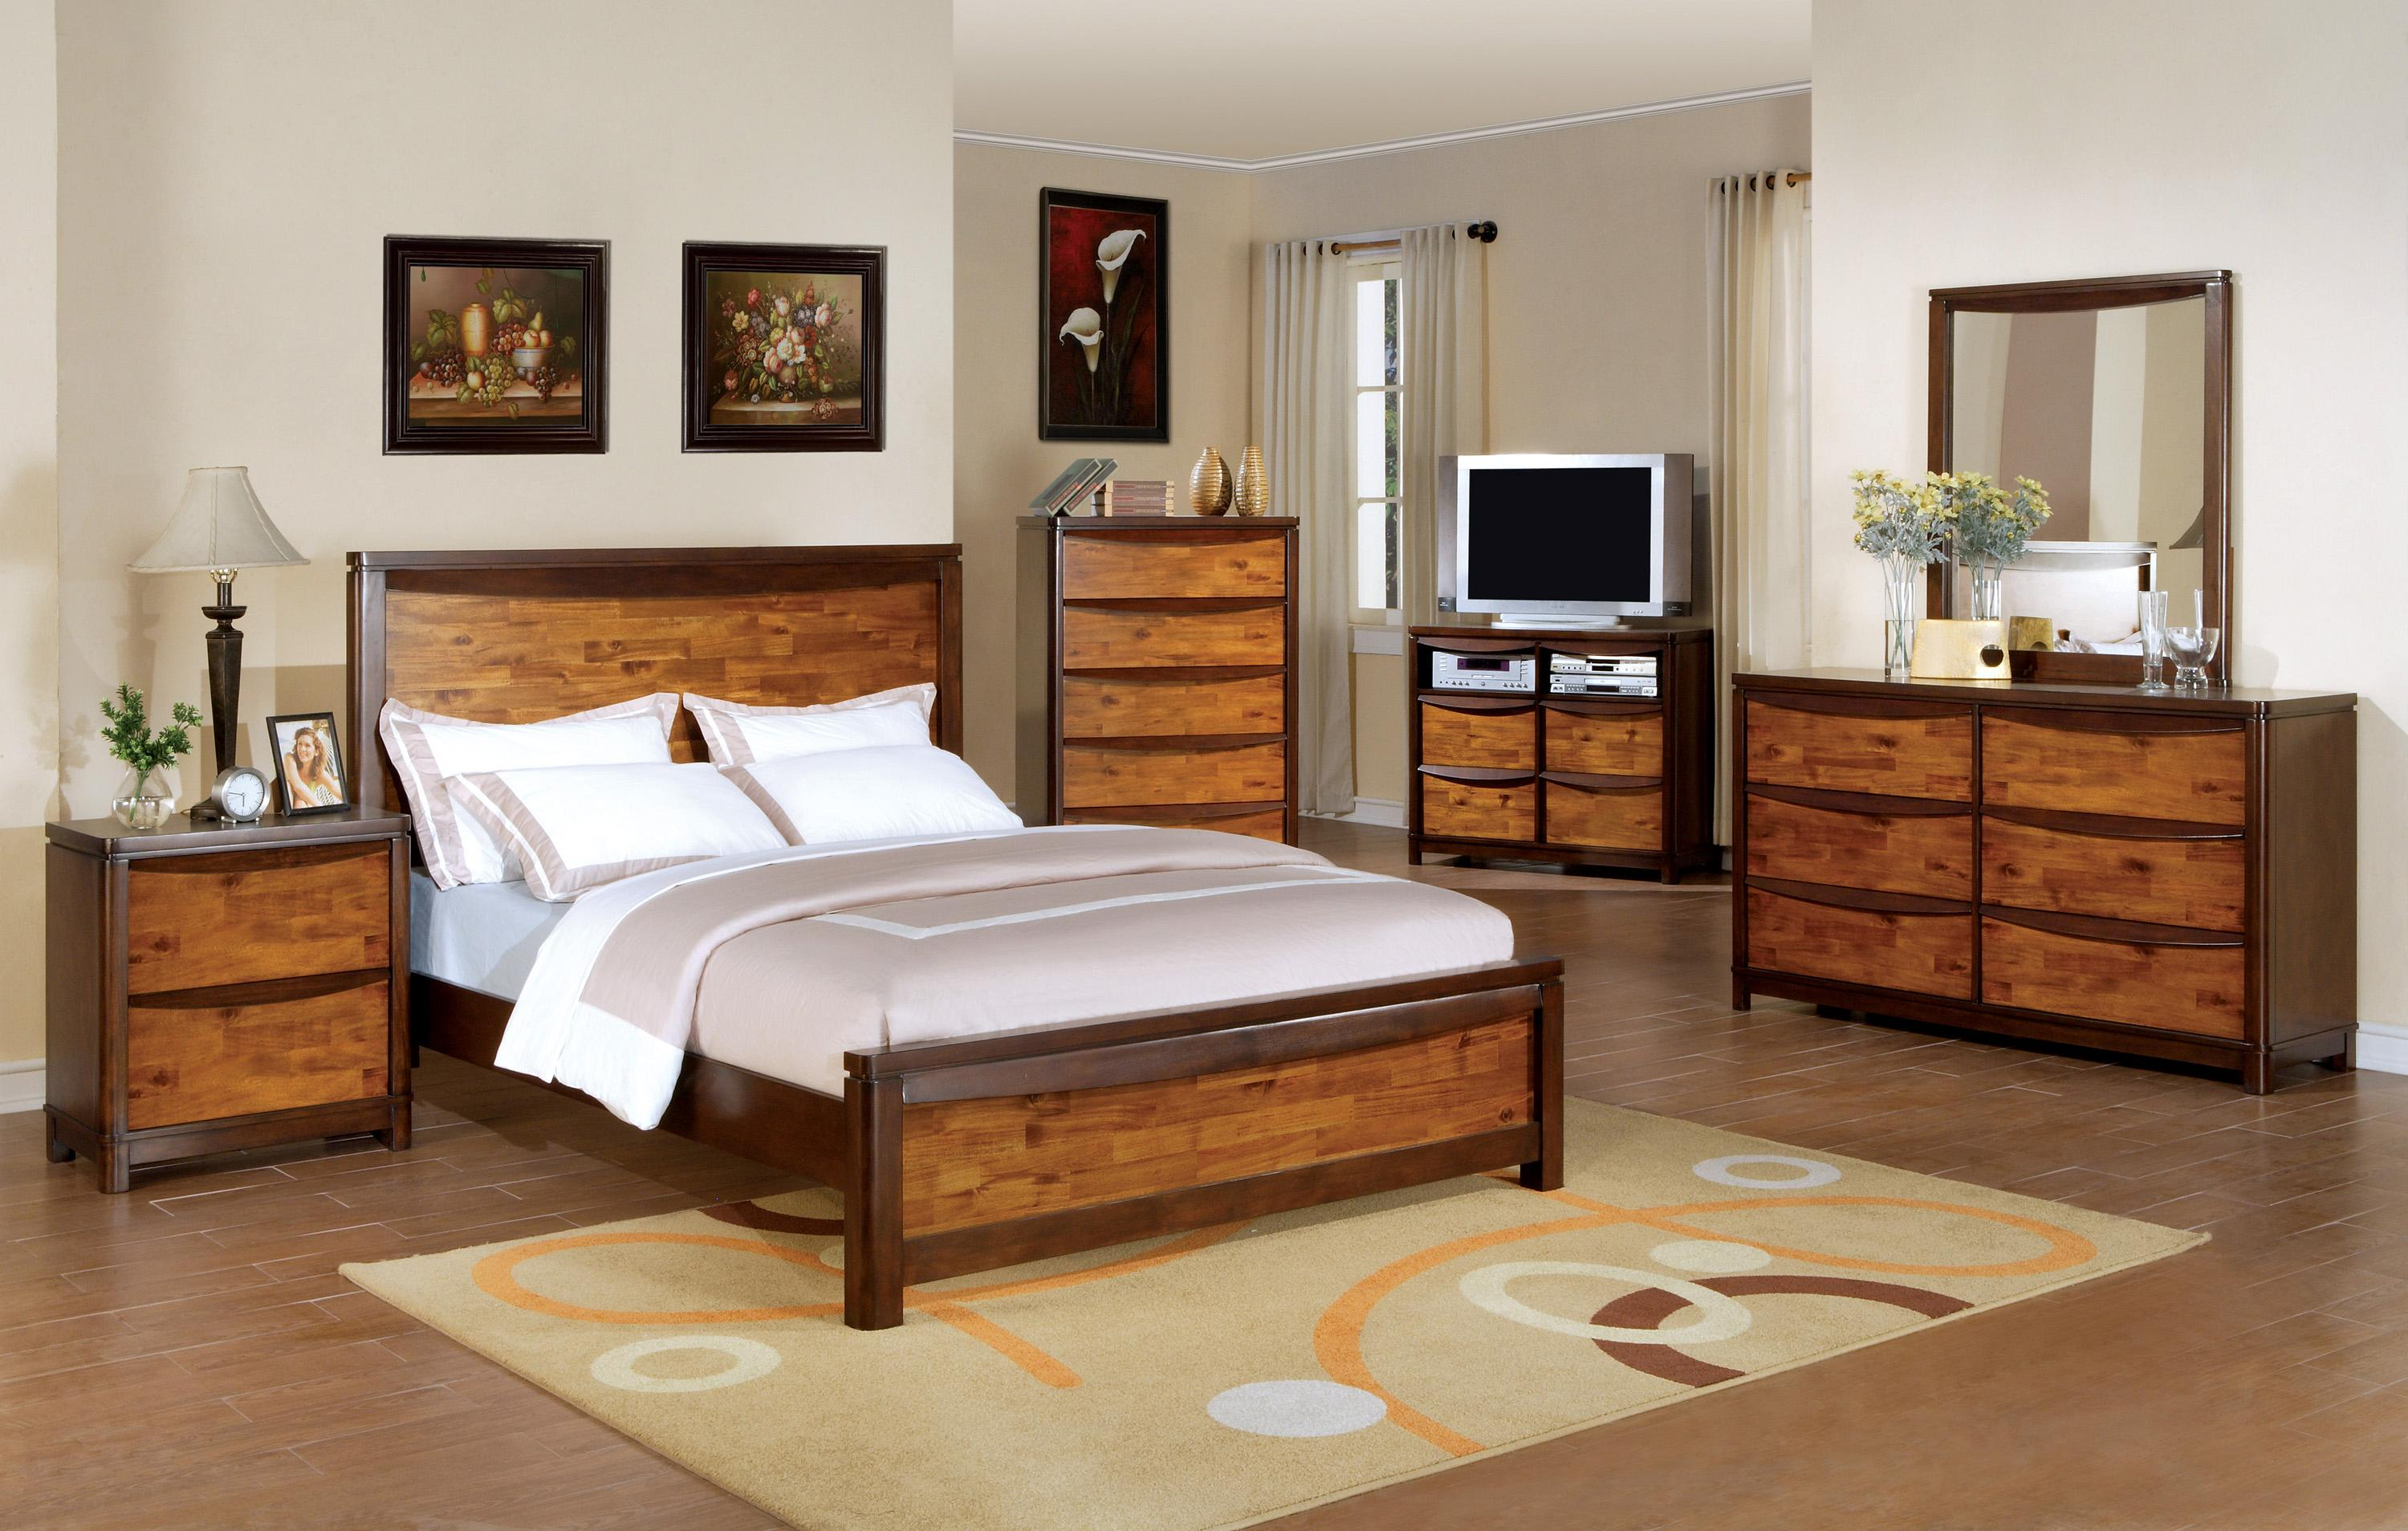 Holland House Kelsy 7 Piece Queen Bedroom Set | FMG - Local ...